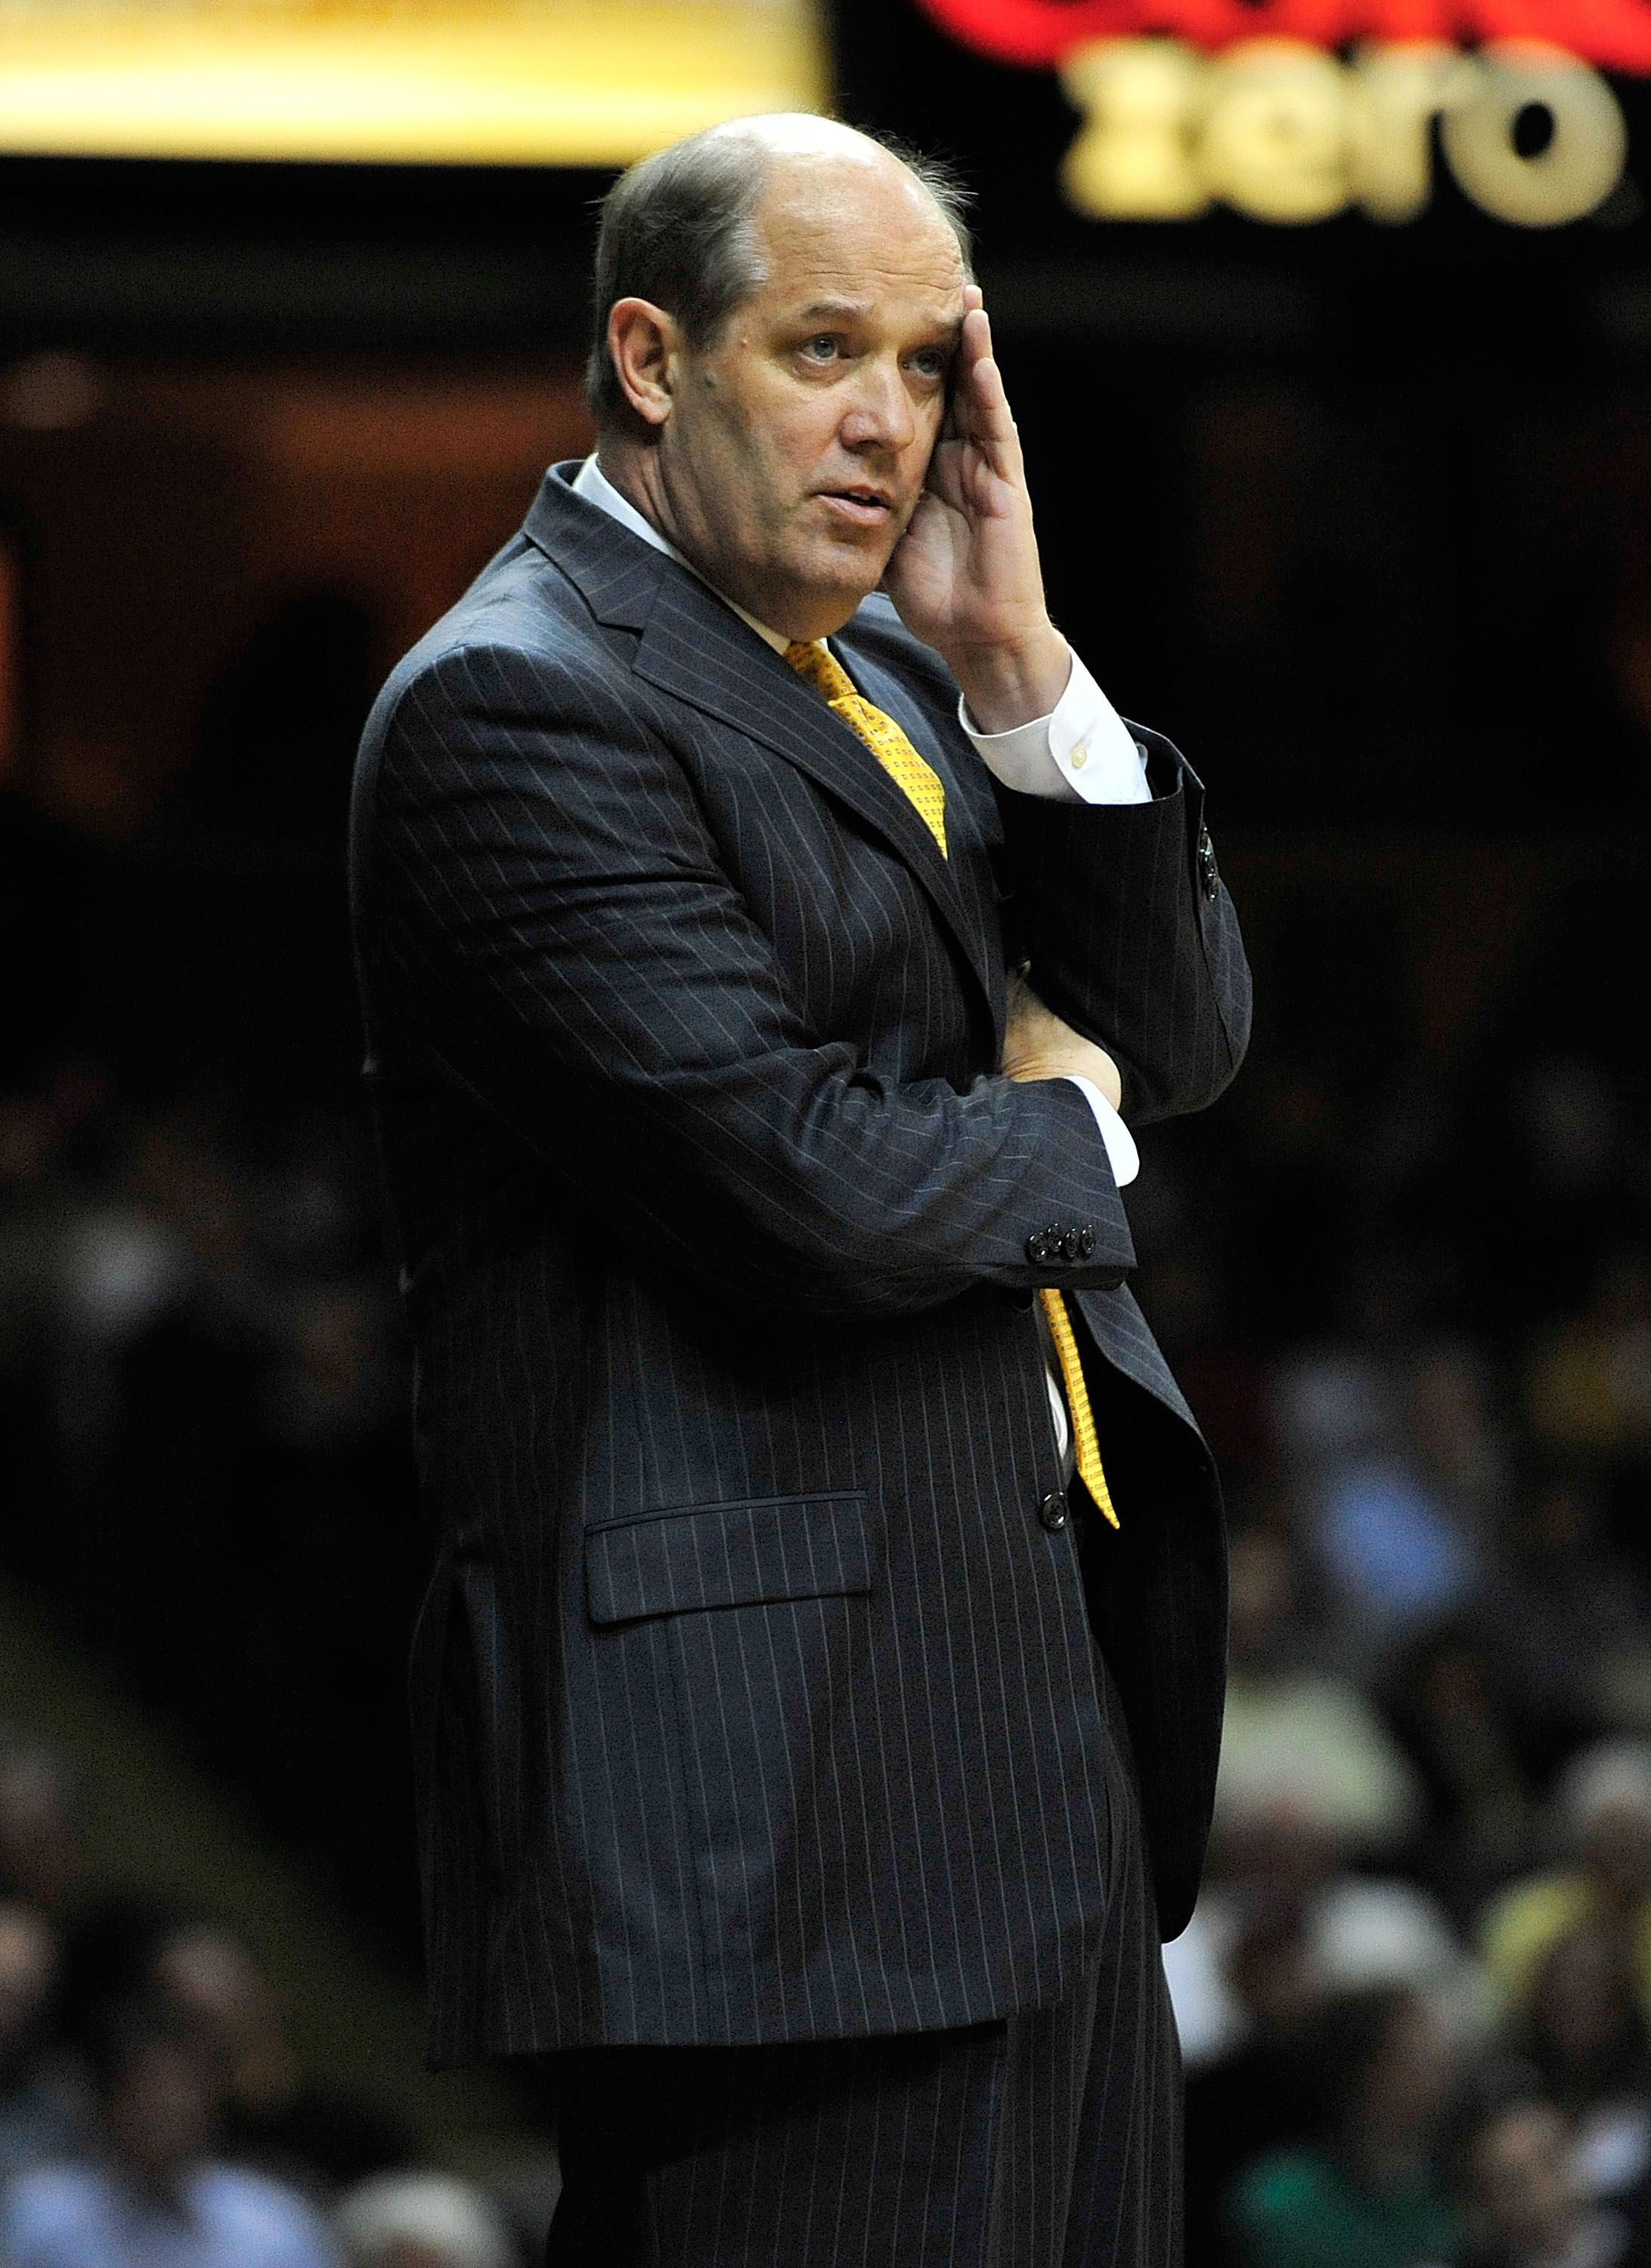 Vandy's Stallings keeps sweating out the close ones.